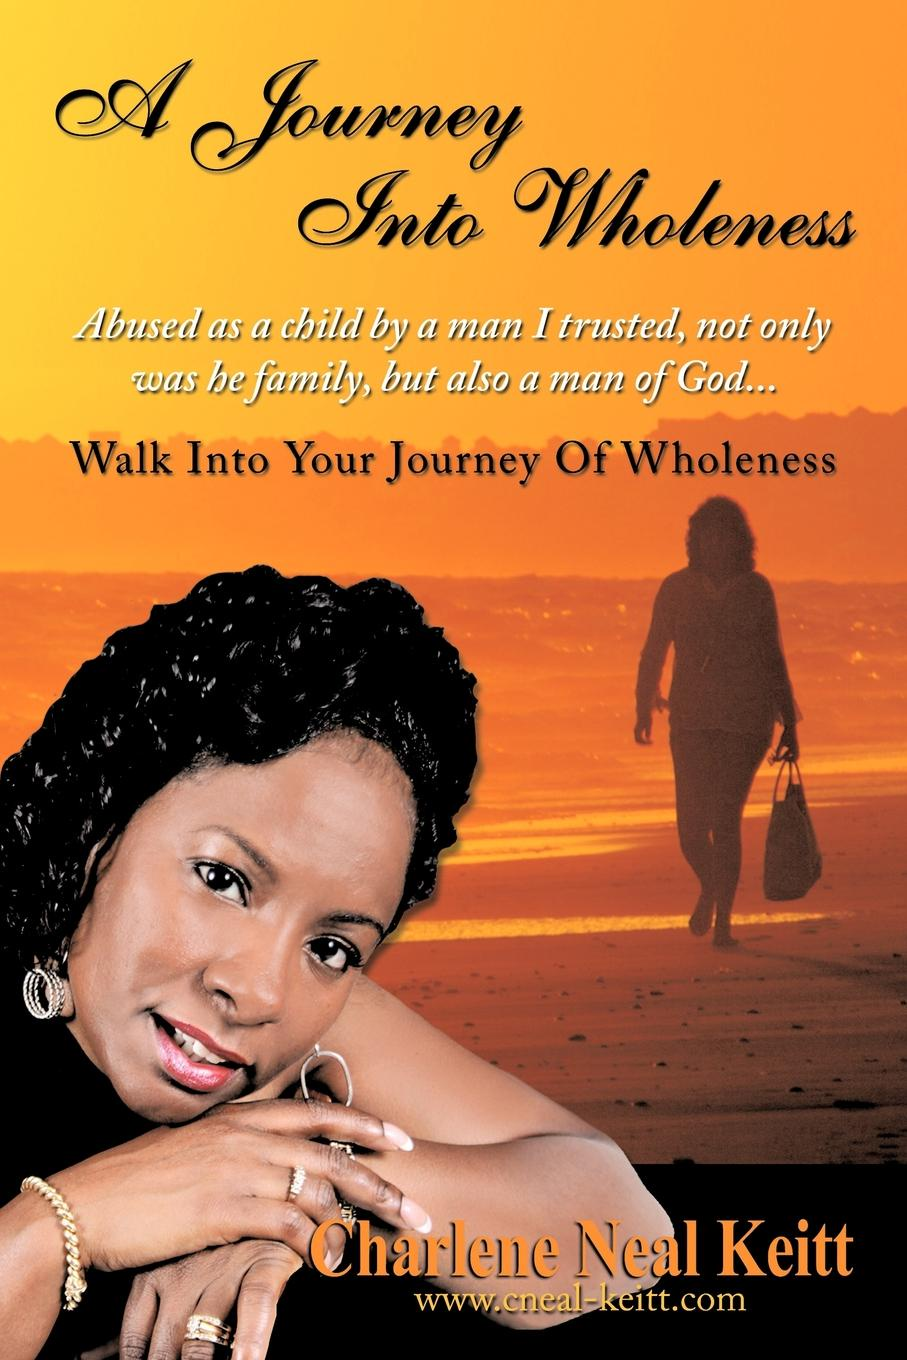 лучшая цена Charlene Neal Keitt A Journey Into Wholeness. Walk Into Your Journey Of Wholeness